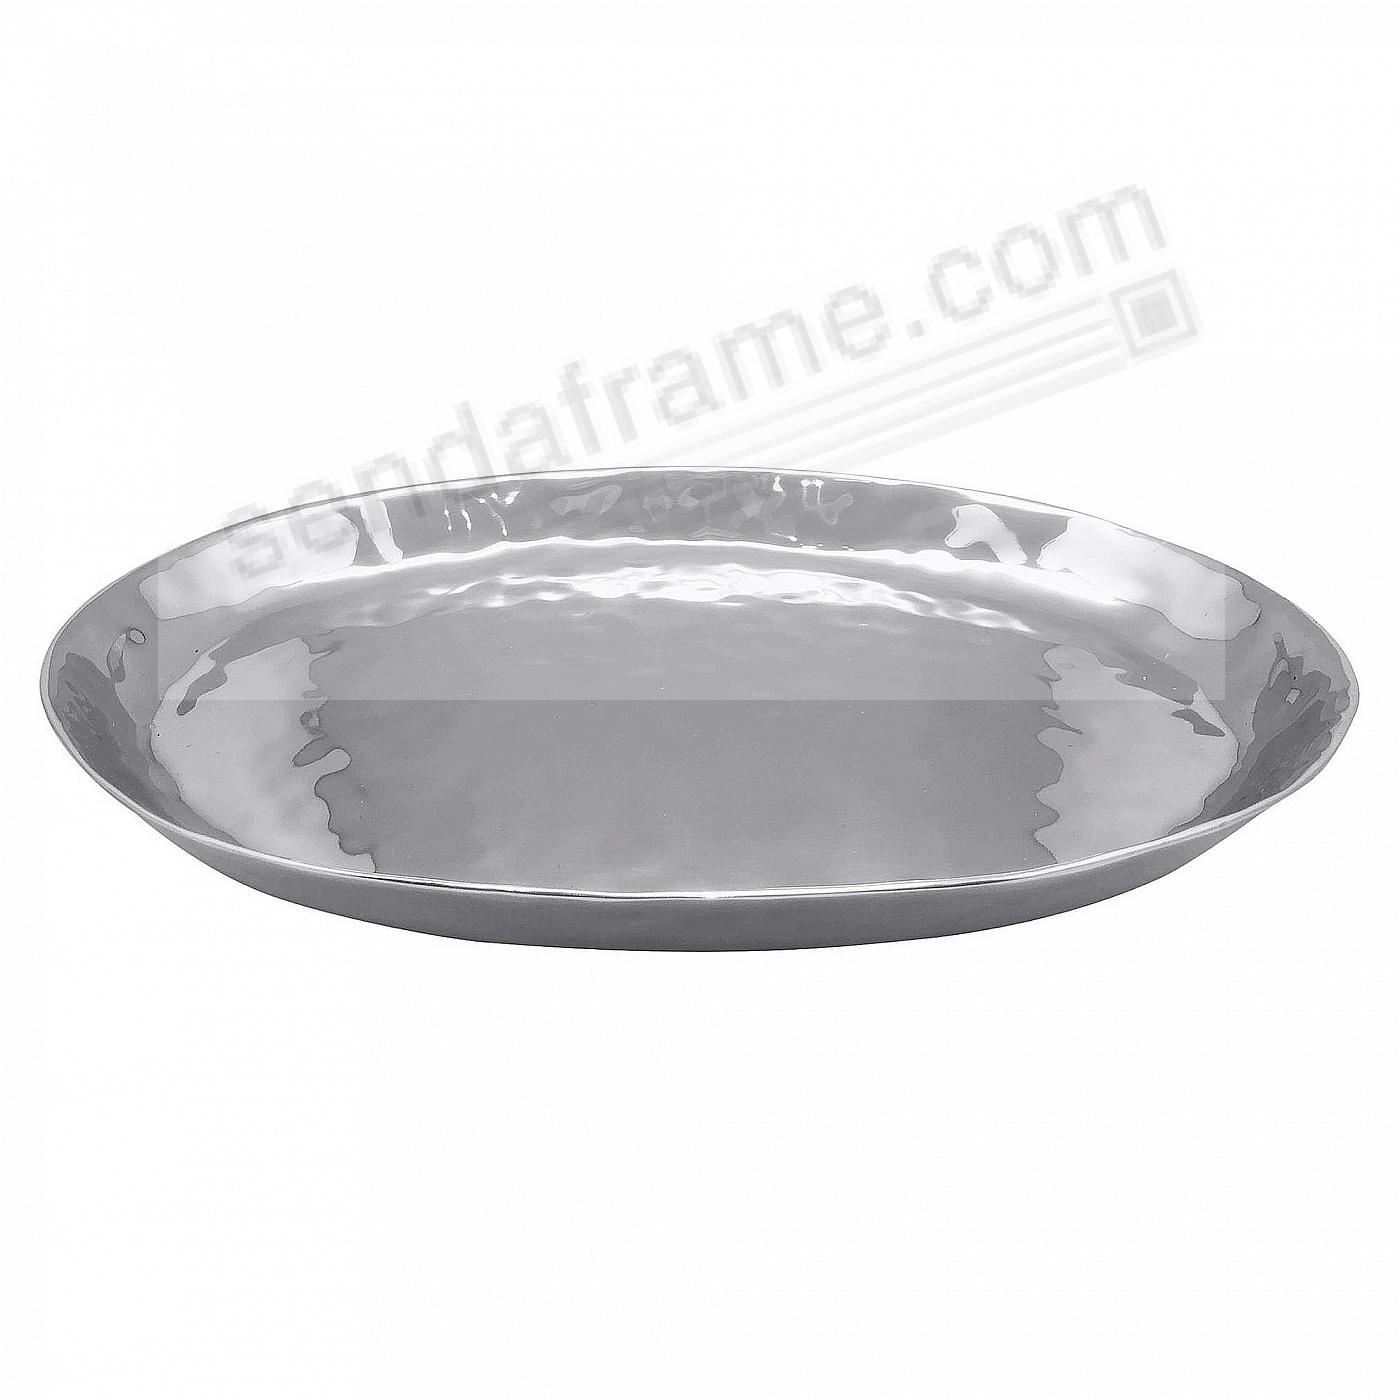 The SHIMMER 20in OVAL TRAY by Mariposa®